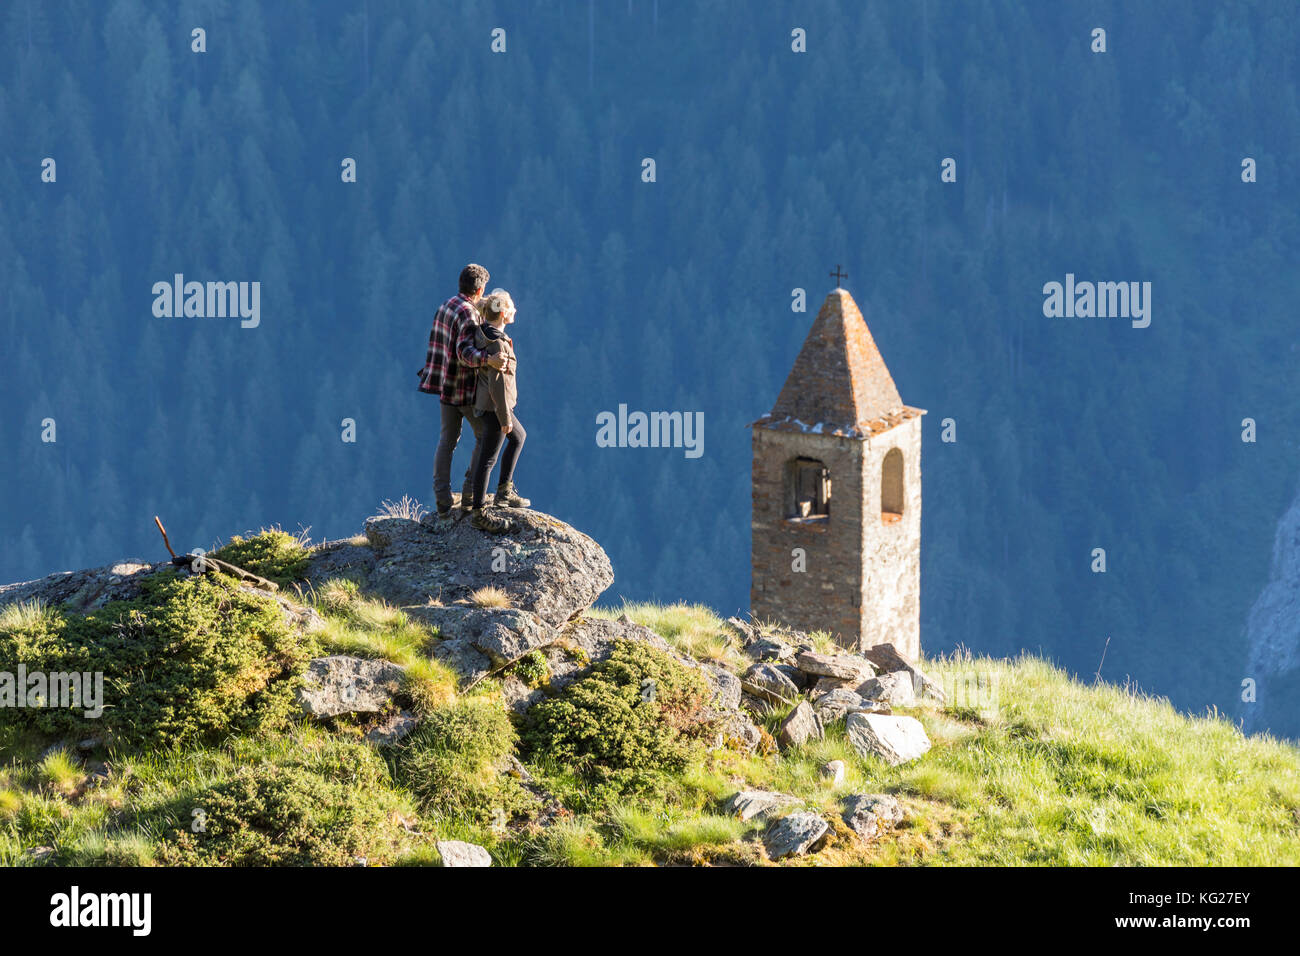 Man and woman embraced look at the bell tower, San Romerio Alp, Brusio, Poschiavo Valley, Canton of Graubunden, - Stock Image